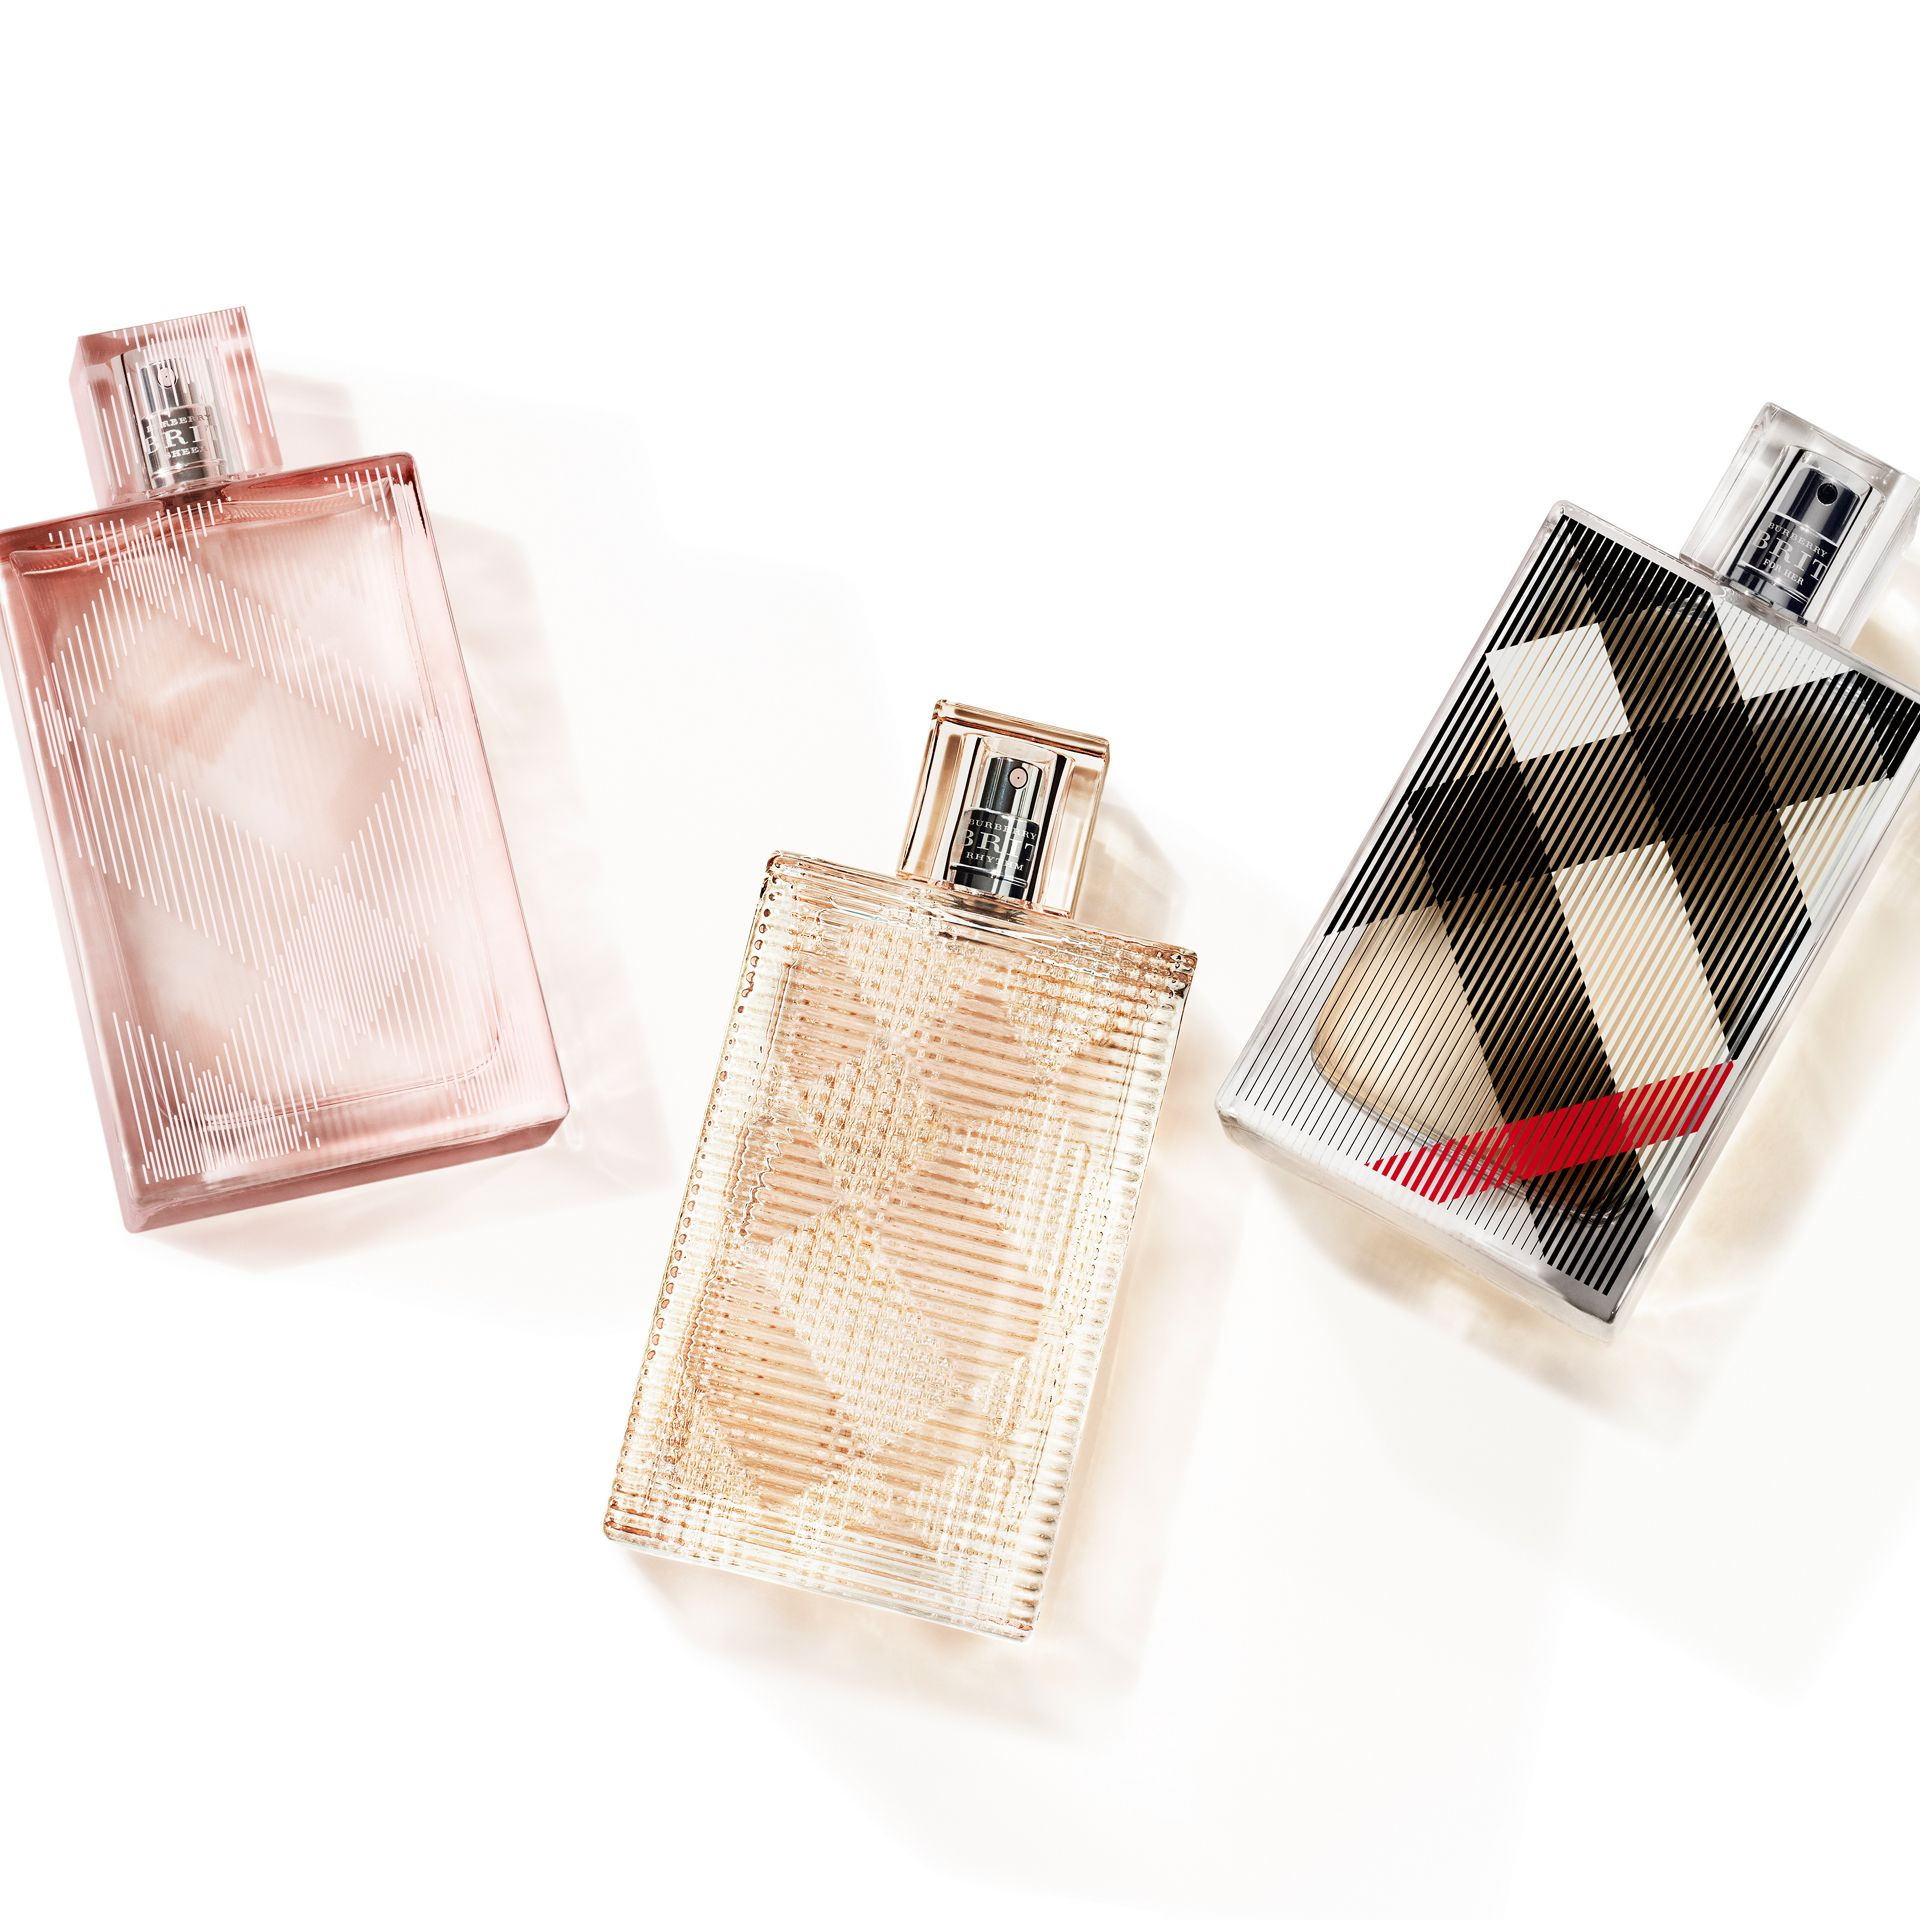 Burberry Brit Sheer Eau de Toilette 200ml - Women | Burberry Hong Kong - gallery image 3